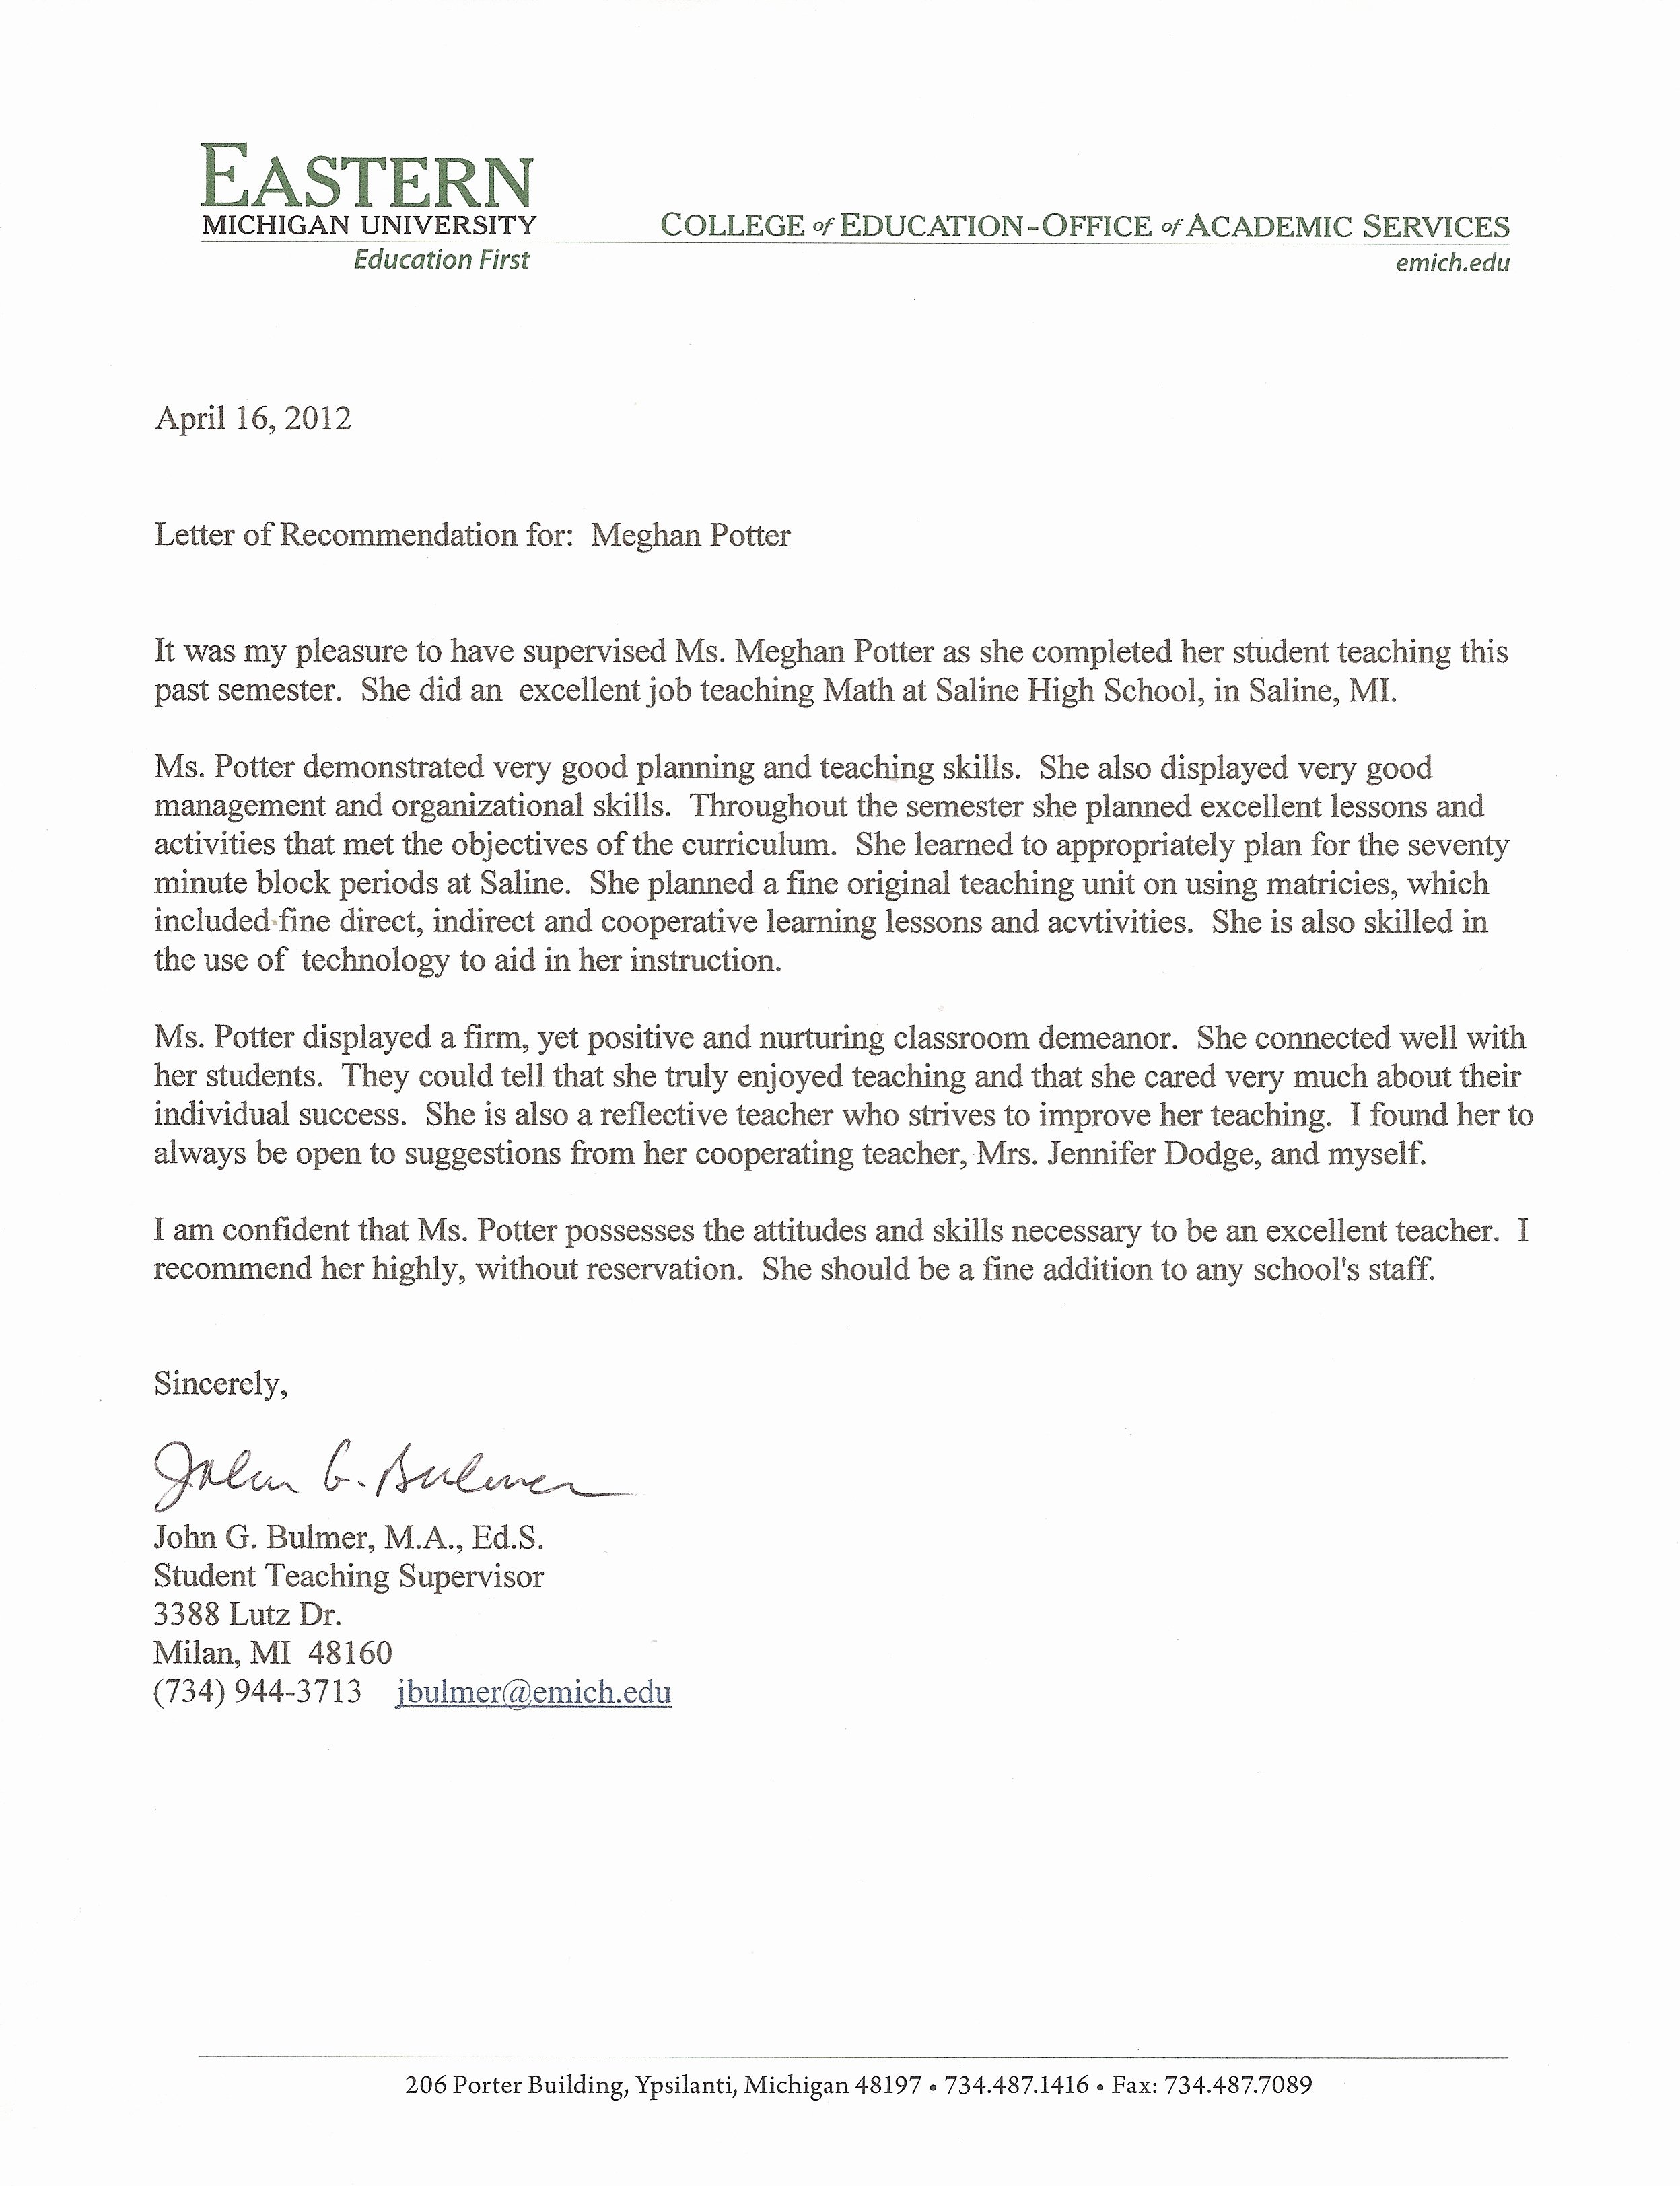 Education Letter Of Recommendation Elegant Resume Meghan Potter